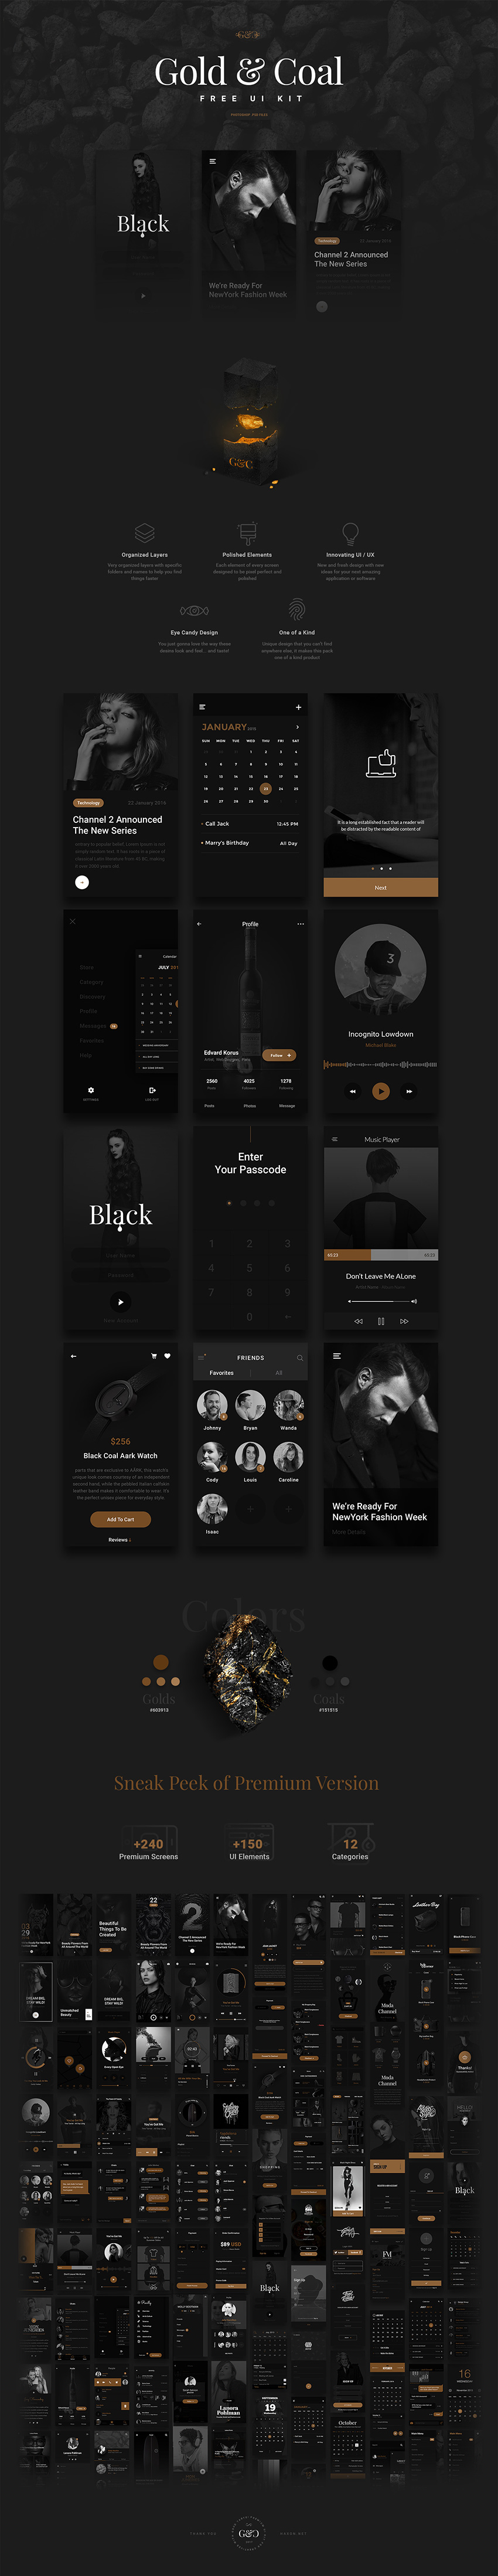 Gold & Coal Free App Design for IOS and Android - Luxury Look UI Resource for Designers